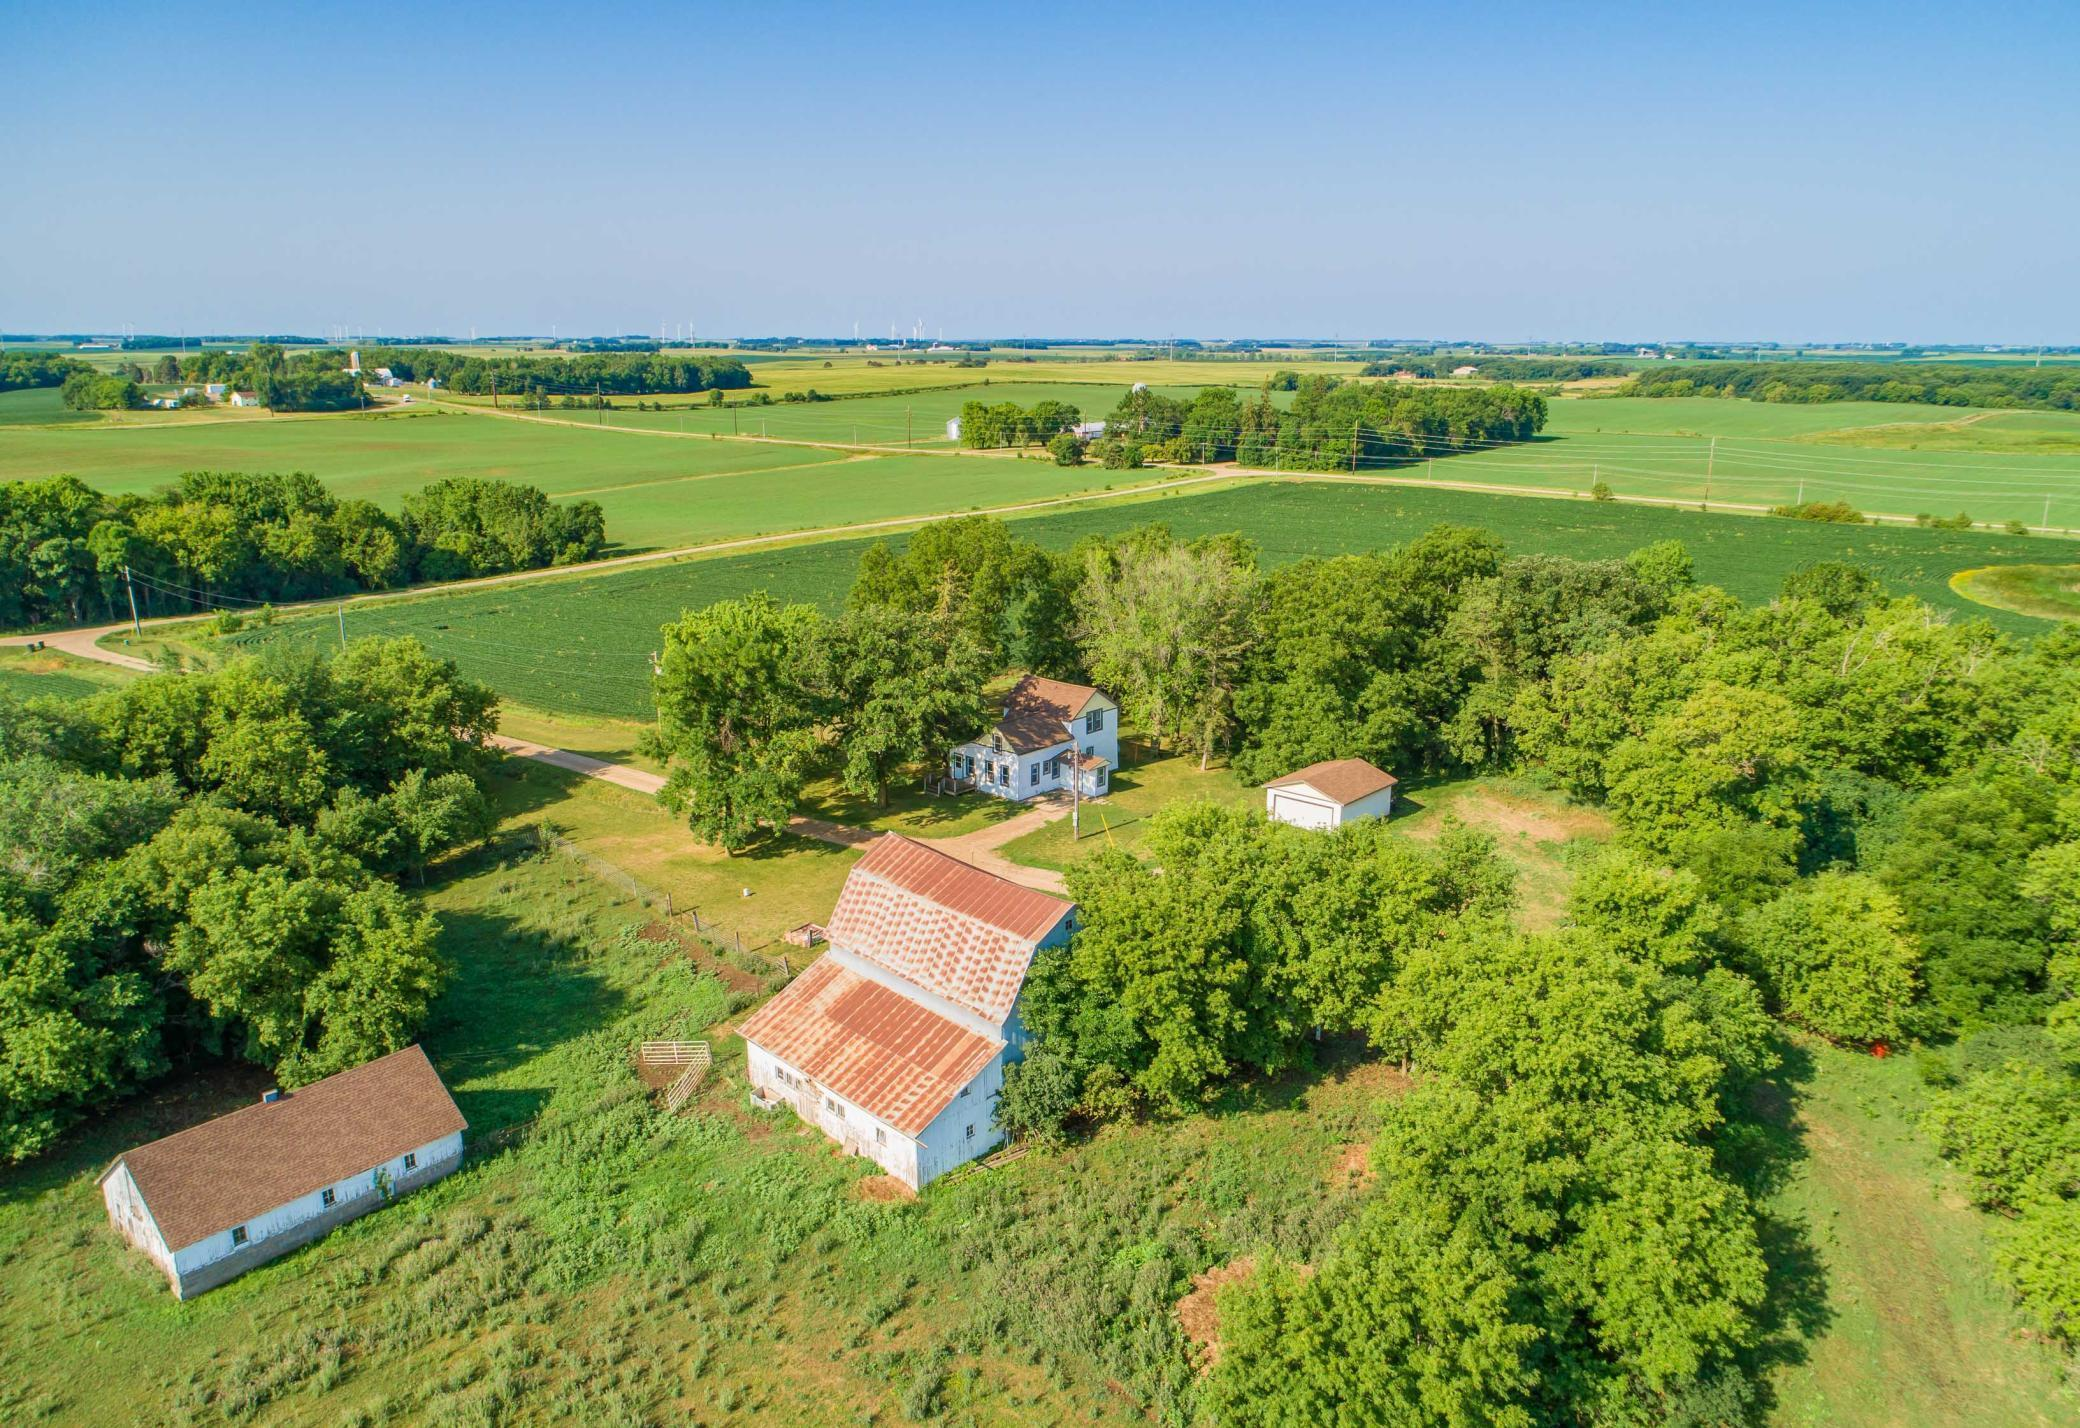 A Rare Opportunity awaits, here is a 122.64 Acre Farm w/ 90 Tillable Acres Consisting of 50% Gonvick Loam, 1 to 4% Slopes, 22.6% Hokans-Buse Complex, 2 to 6 percent Slopes, 12.7% Barnes-Buse Complex, 6 to 12% slopes, moderately eroded & Lakepark-Parnell, occasionally ponded, complex, 0 to 2 percent slopes make up the majority of the land. Soil map & descriptions available to agents in supplements. To go along with the Tillable acreage, is a 4 bed 1 bath 1 1/2 story home, built in 1940 this home has newer siding, roof, windows, furnace & hot water heater, large living room, main floor laundry & Bedroom, a 2 car detached garage, old school house (used for storage). For additional income this property receives $875 a month w/ a lease from Billboards.